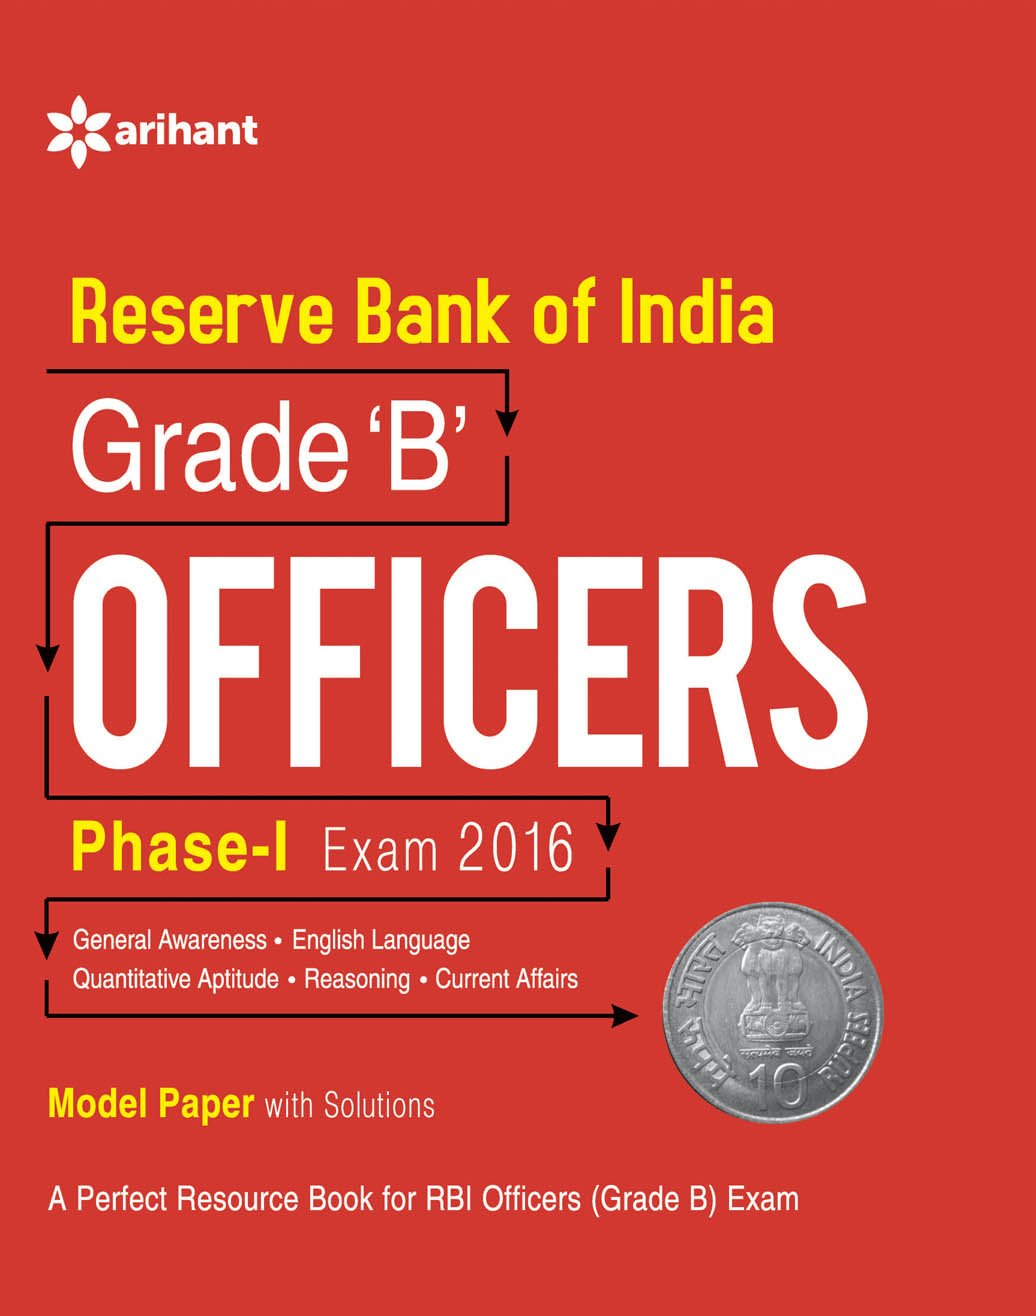 in buy rbi grade b officers online exam phase 1 reserve bank of grade b officers phase 1 exam 2016